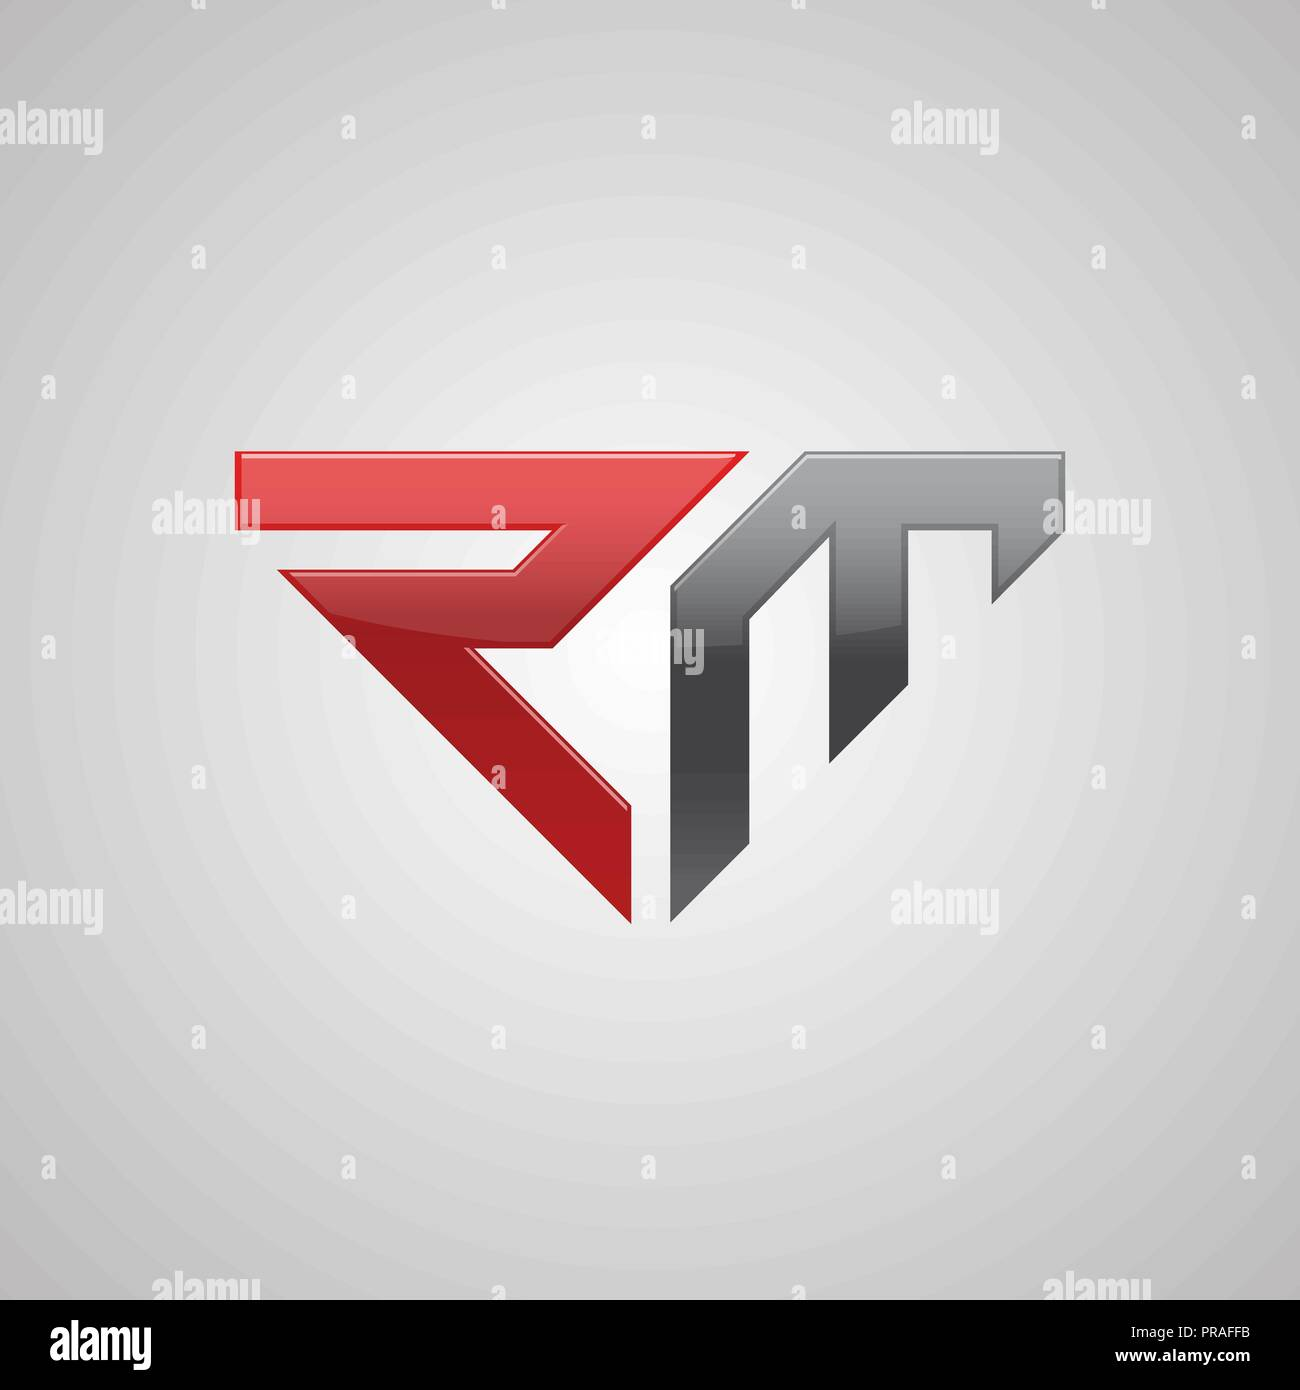 rm logo high resolution stock photography and images alamy https www alamy com creative letter rm logo concept design modern bold and professional feel very nice for brand identity image220893215 html